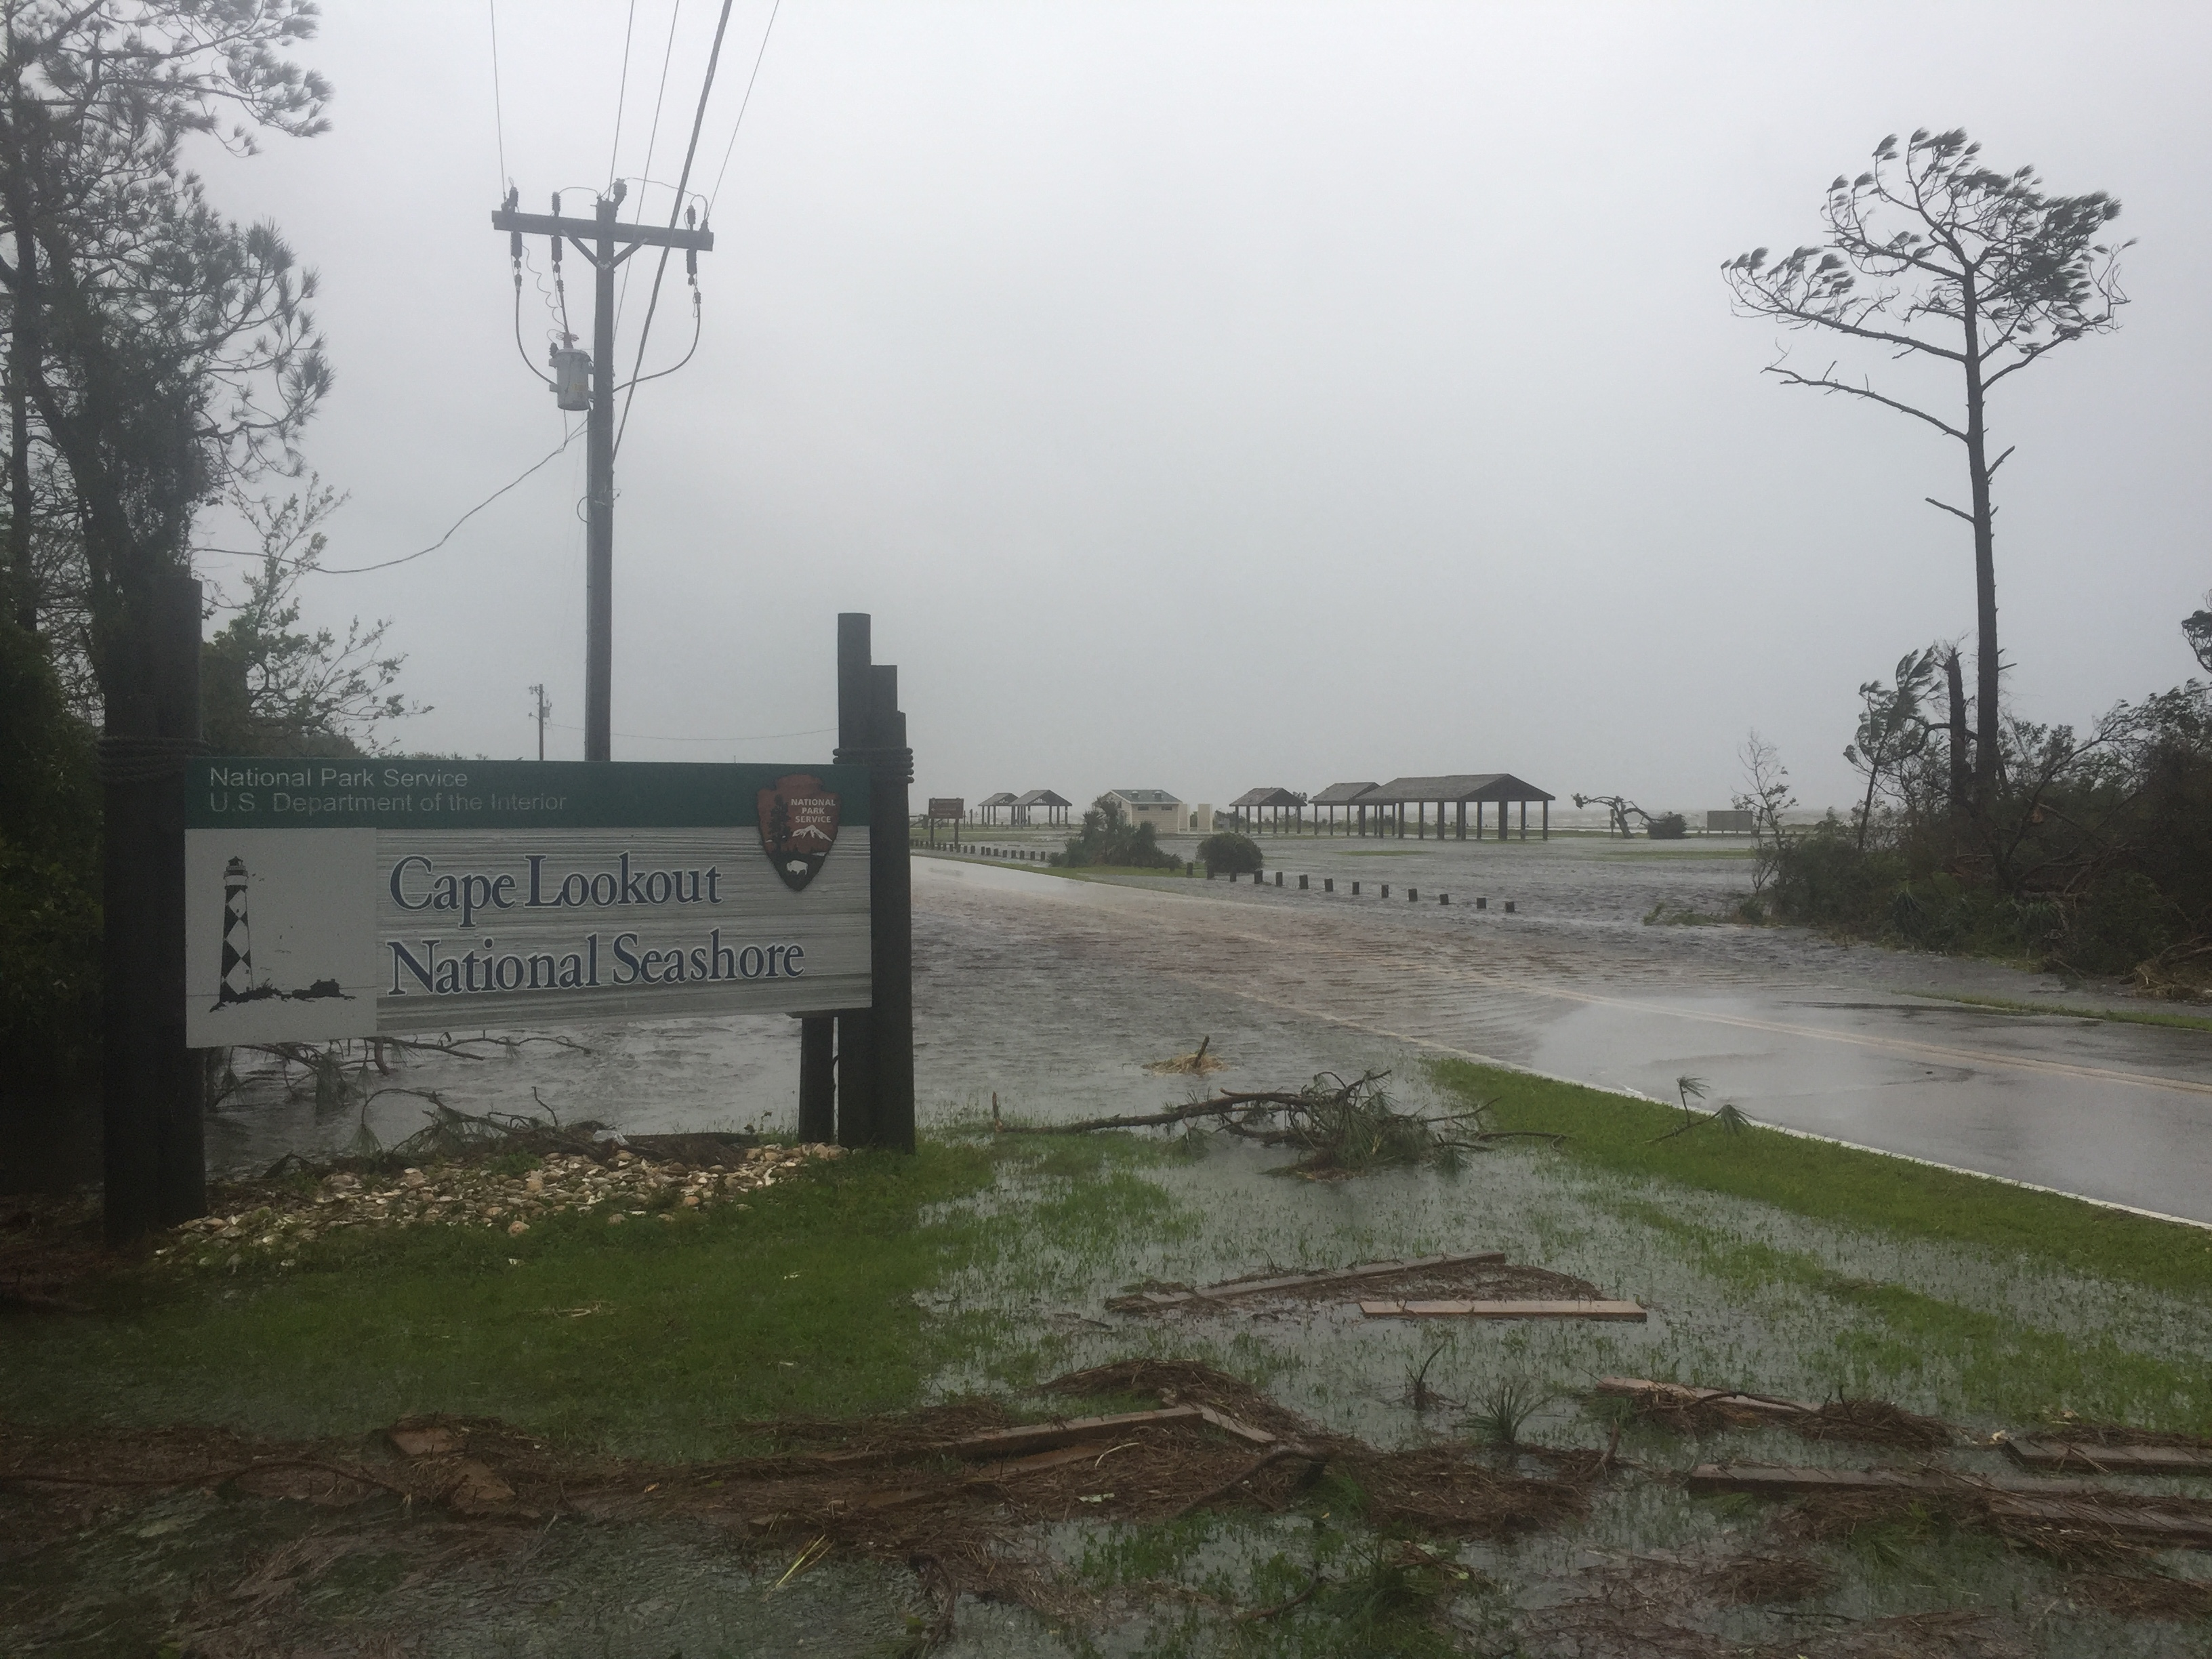 Flood waters and downed limbs surround the entrance sign for Cape Lookout National Seashore.